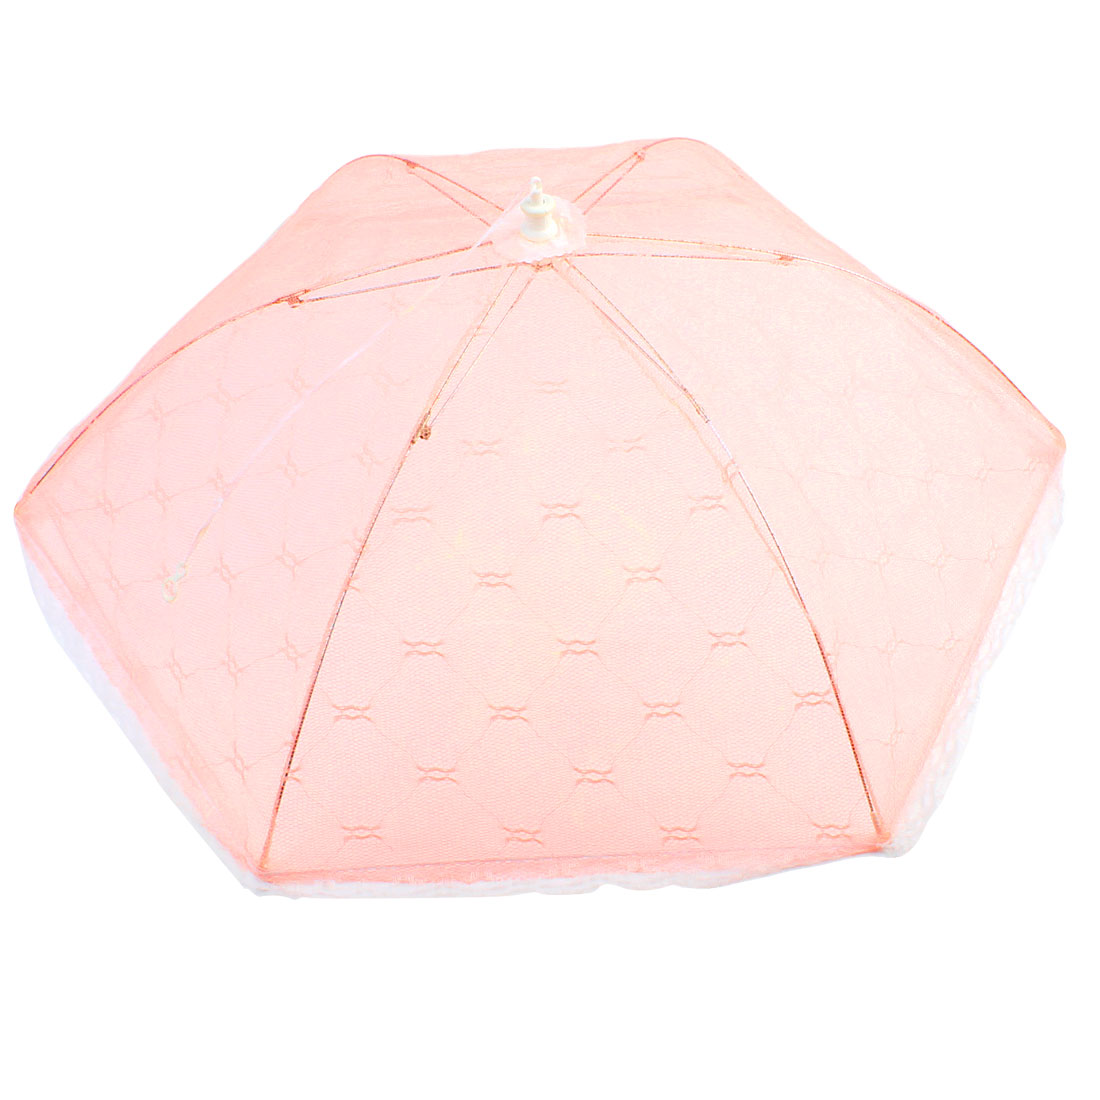 Home Rhombus Print Collapsible Food Cover Umbrella Daily Tableware Pink